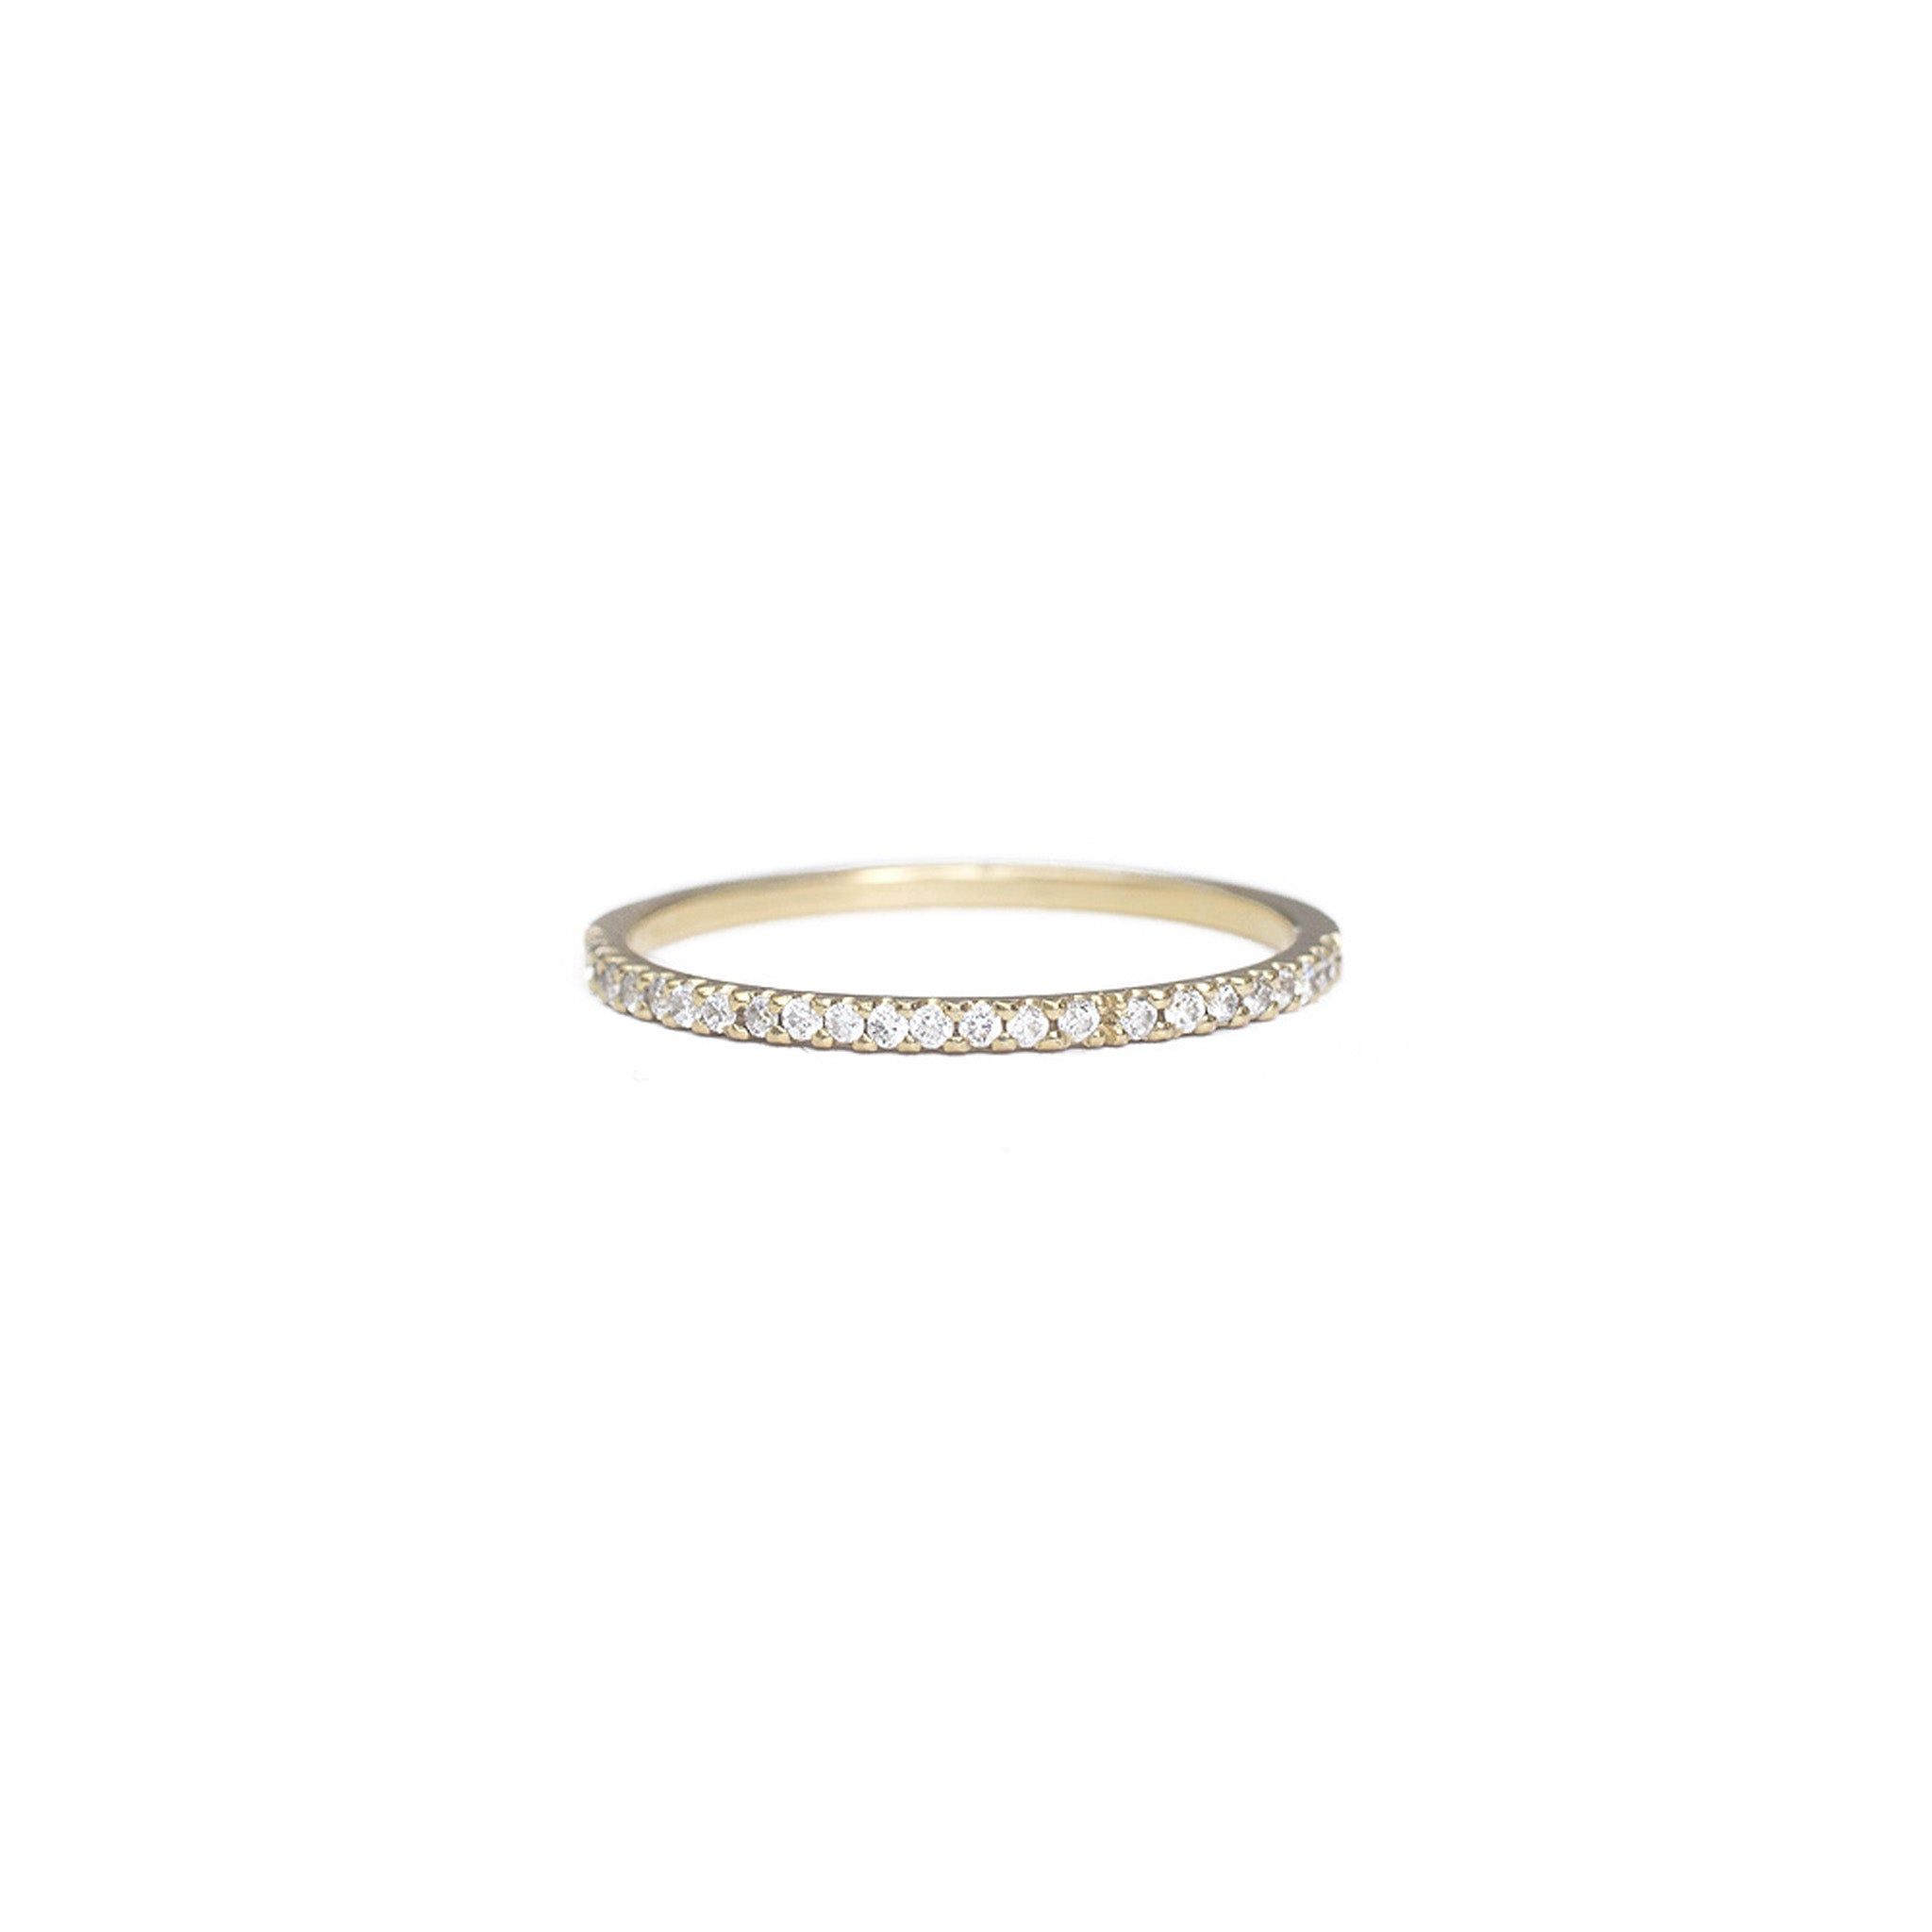 band pave bands product guard pav spacer jewelyrie eternity diamond ring